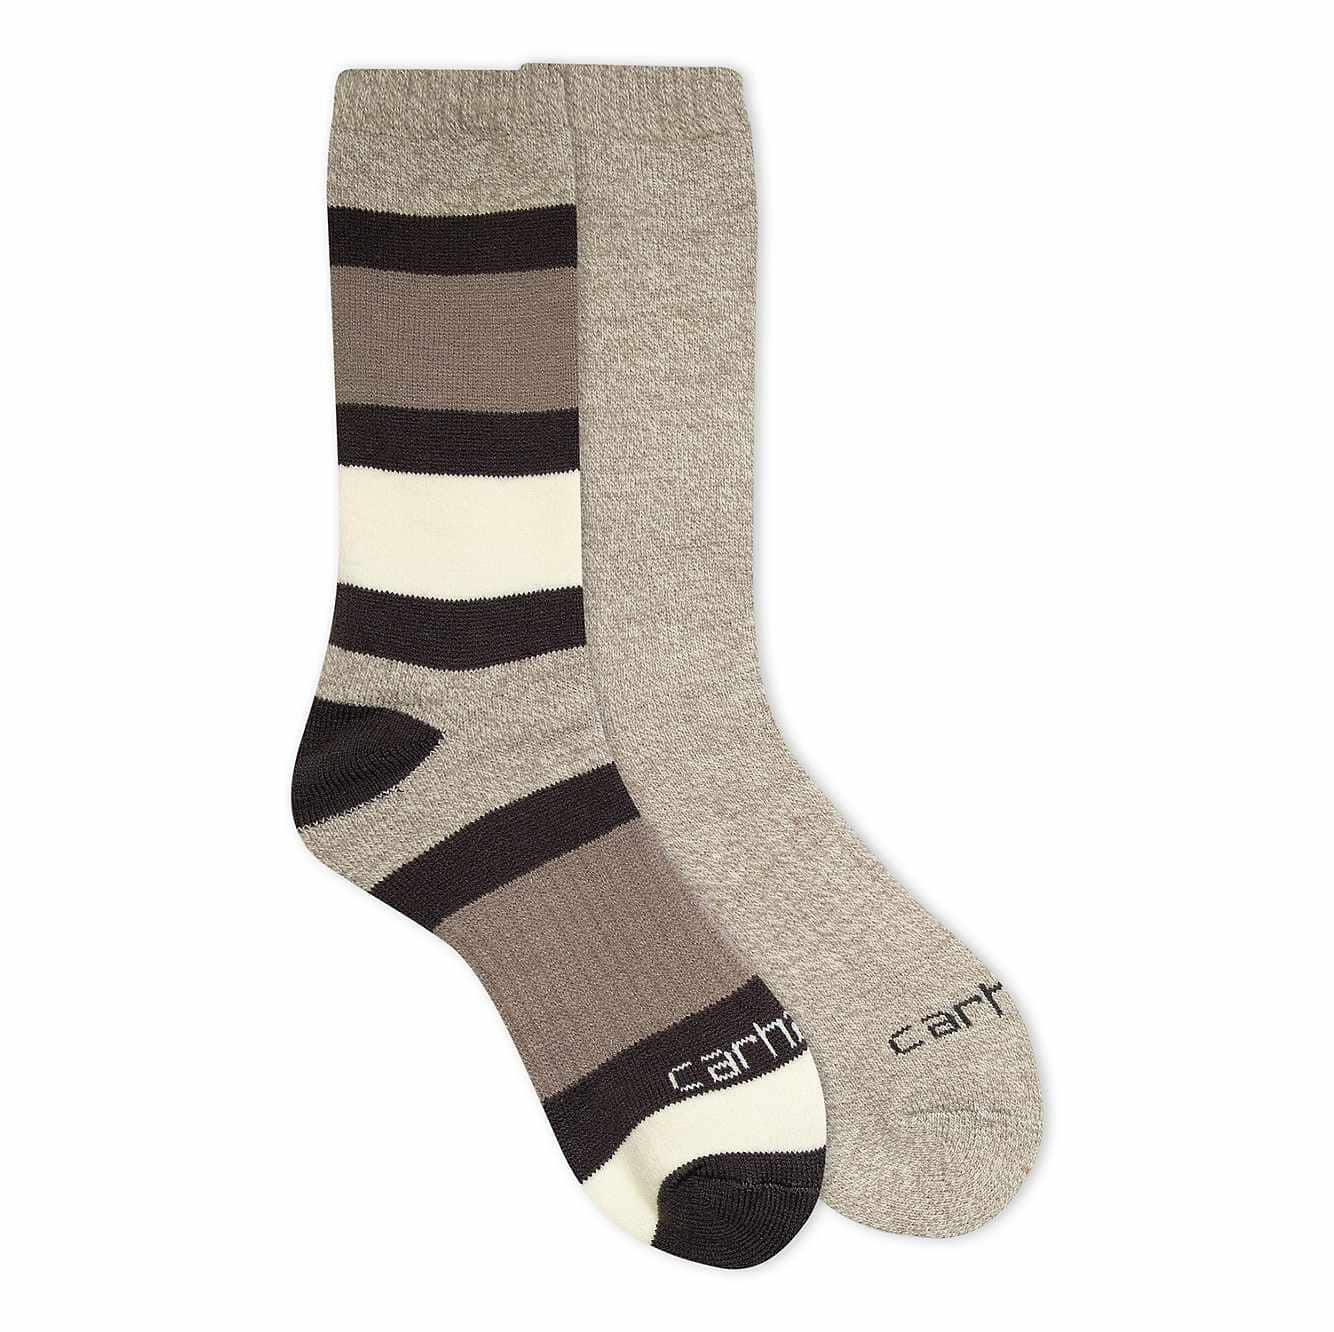 Picture of Arctic Thermal Crew Sock 2 Pack in Charcoal